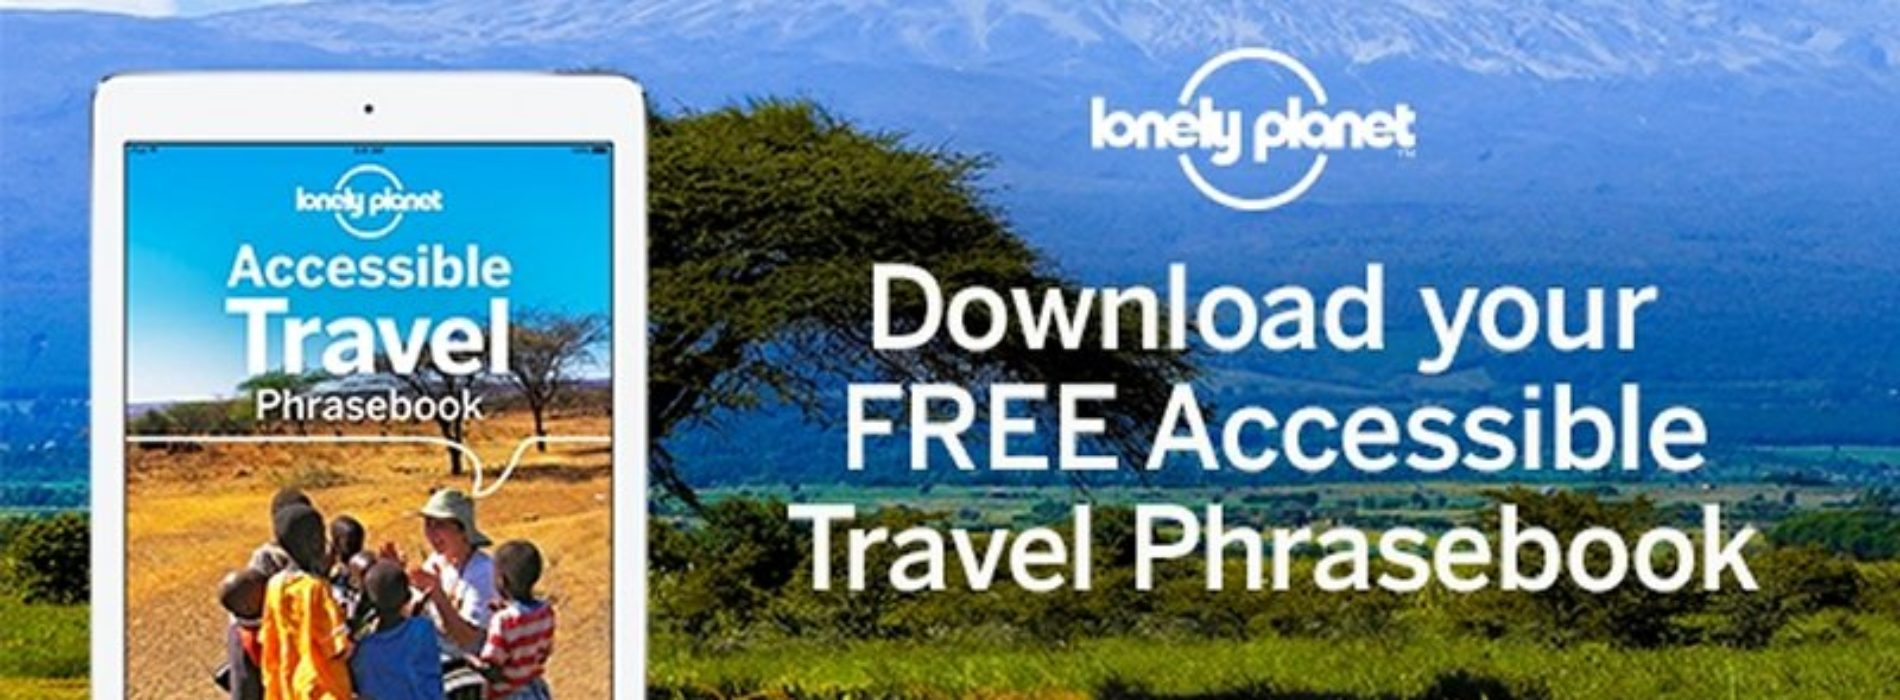 Explore the world with Lonely Planet's Accessible Travel Phrasebook